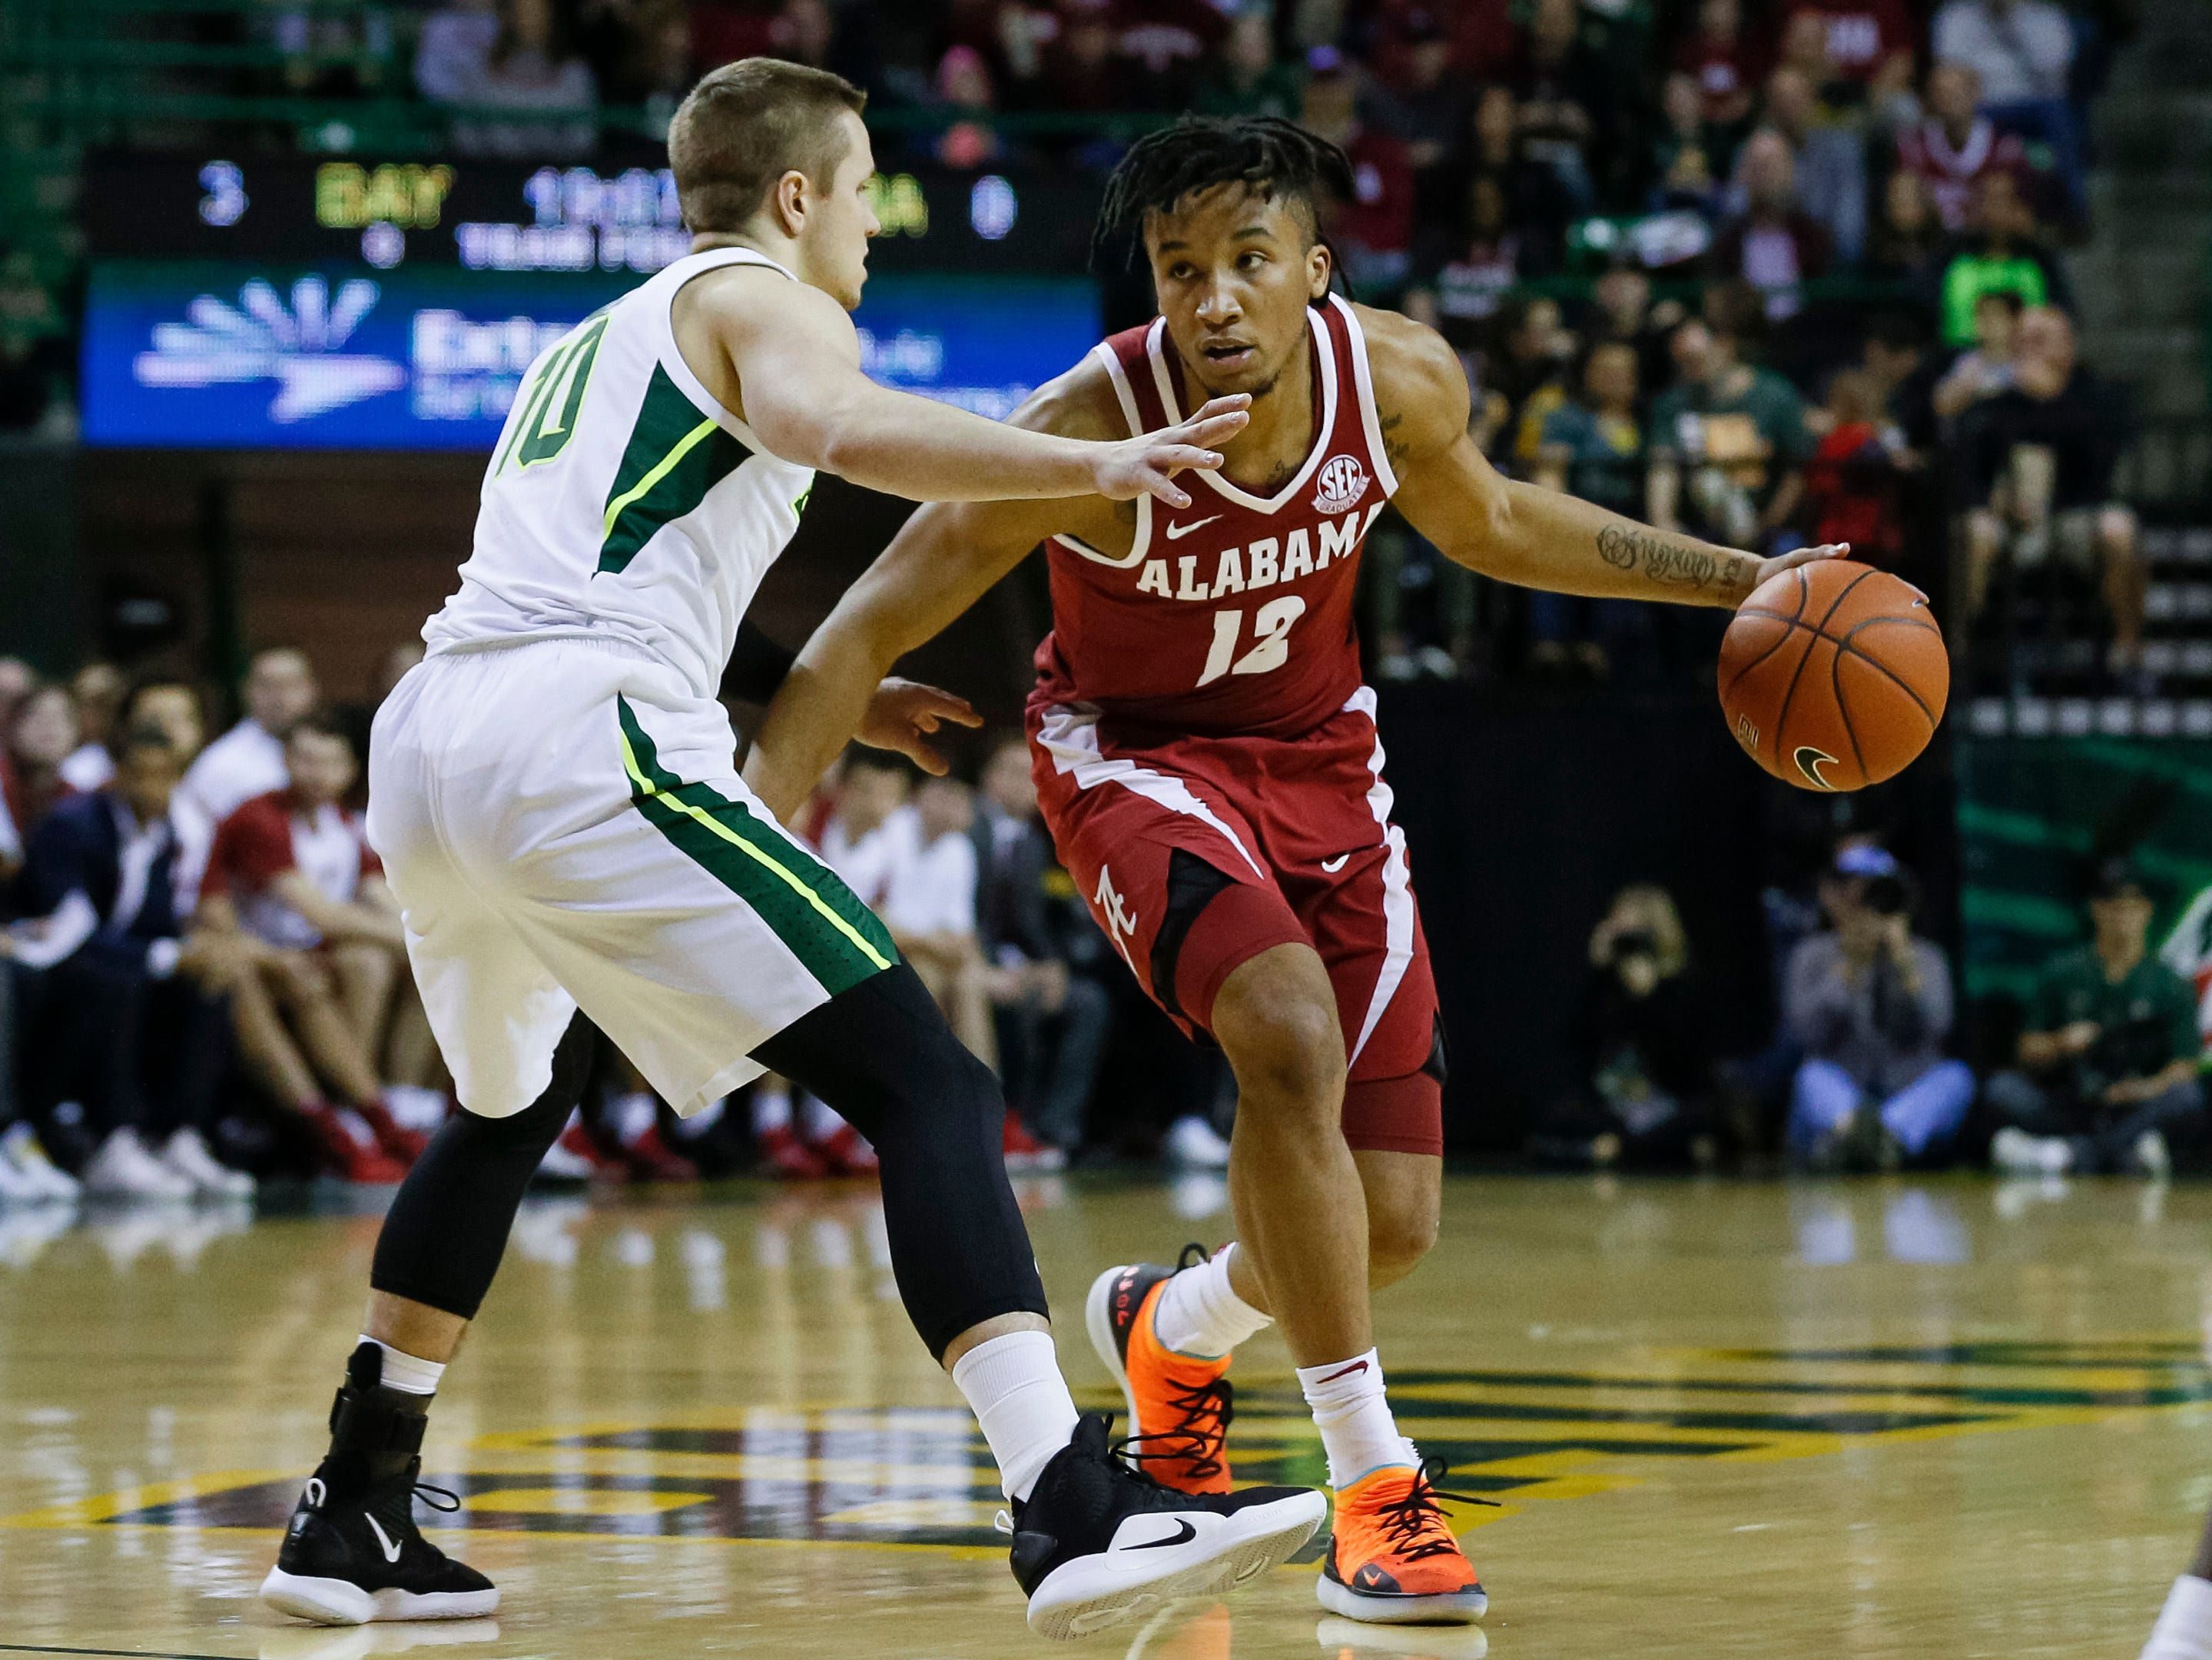 Jan 26, 2019; Waco, TX, USA; Alabama Crimson Tide guard Dazon Ingram (12) dribbles the ball around Baylor Bears guard Makai Mason (10) during the first half at Ferrell Center. Mandatory Credit: Ray Carlin-USA TODAY Sports